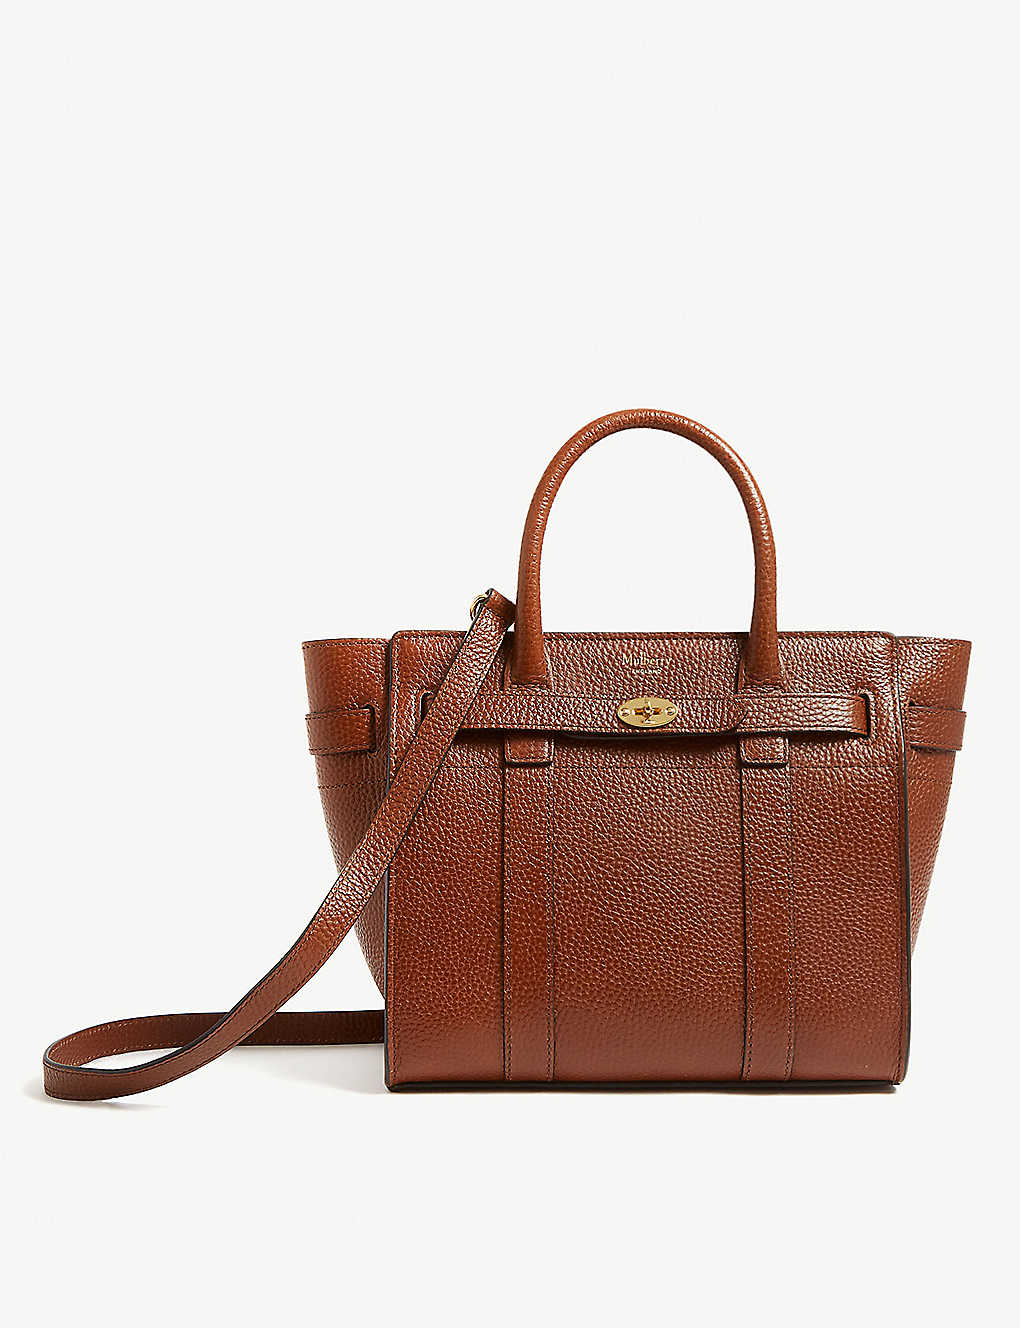 6329876ace0 MULBERRY - Small Bayswater leather tote bag   Selfridges.com